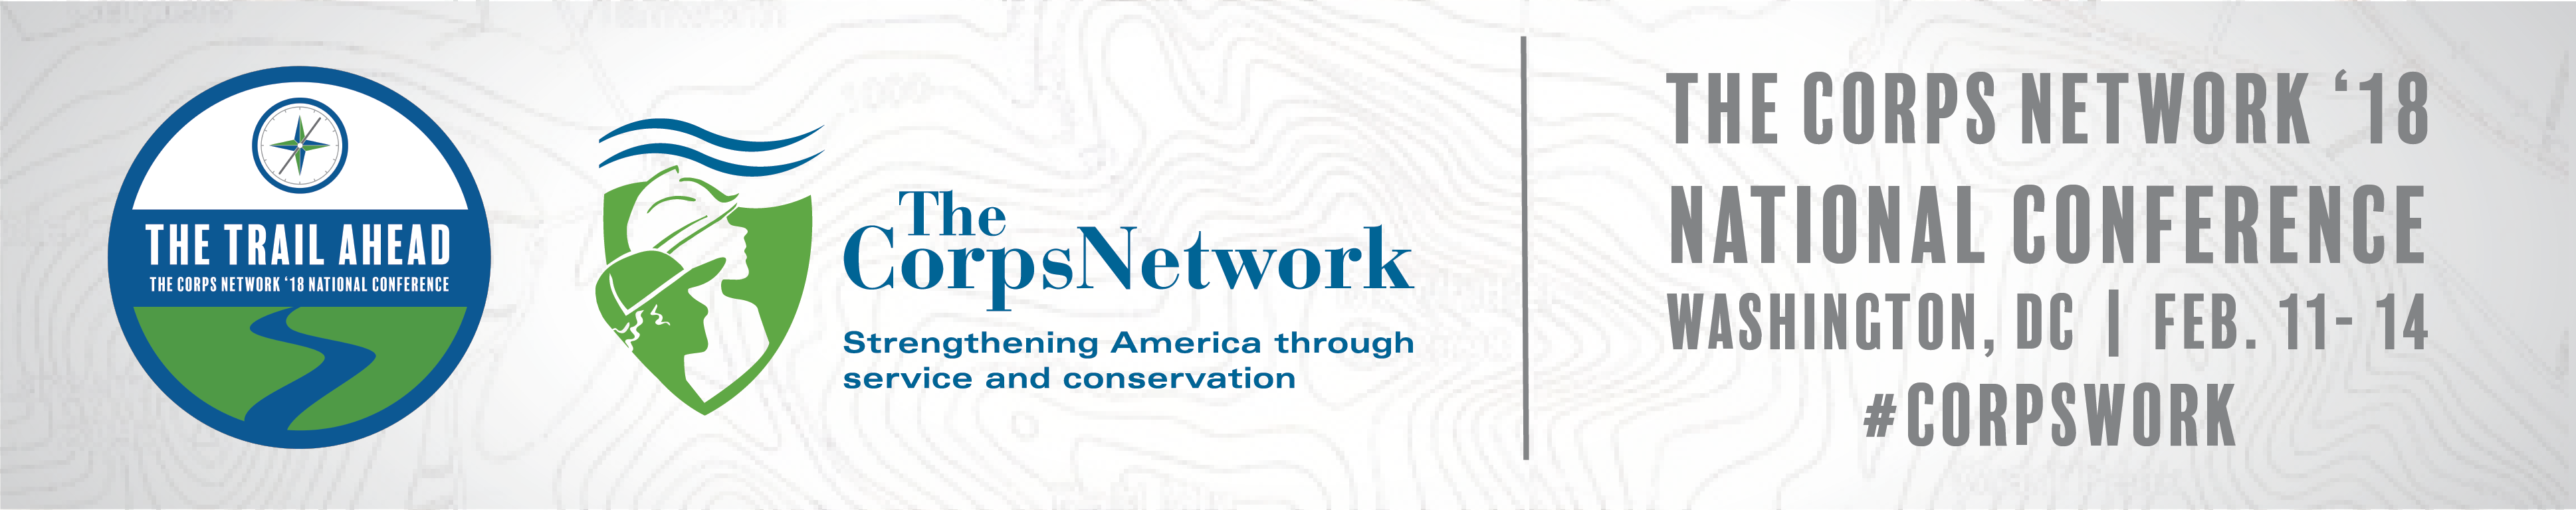 The Corps Network 2018 National Conference: The Trail Ahead